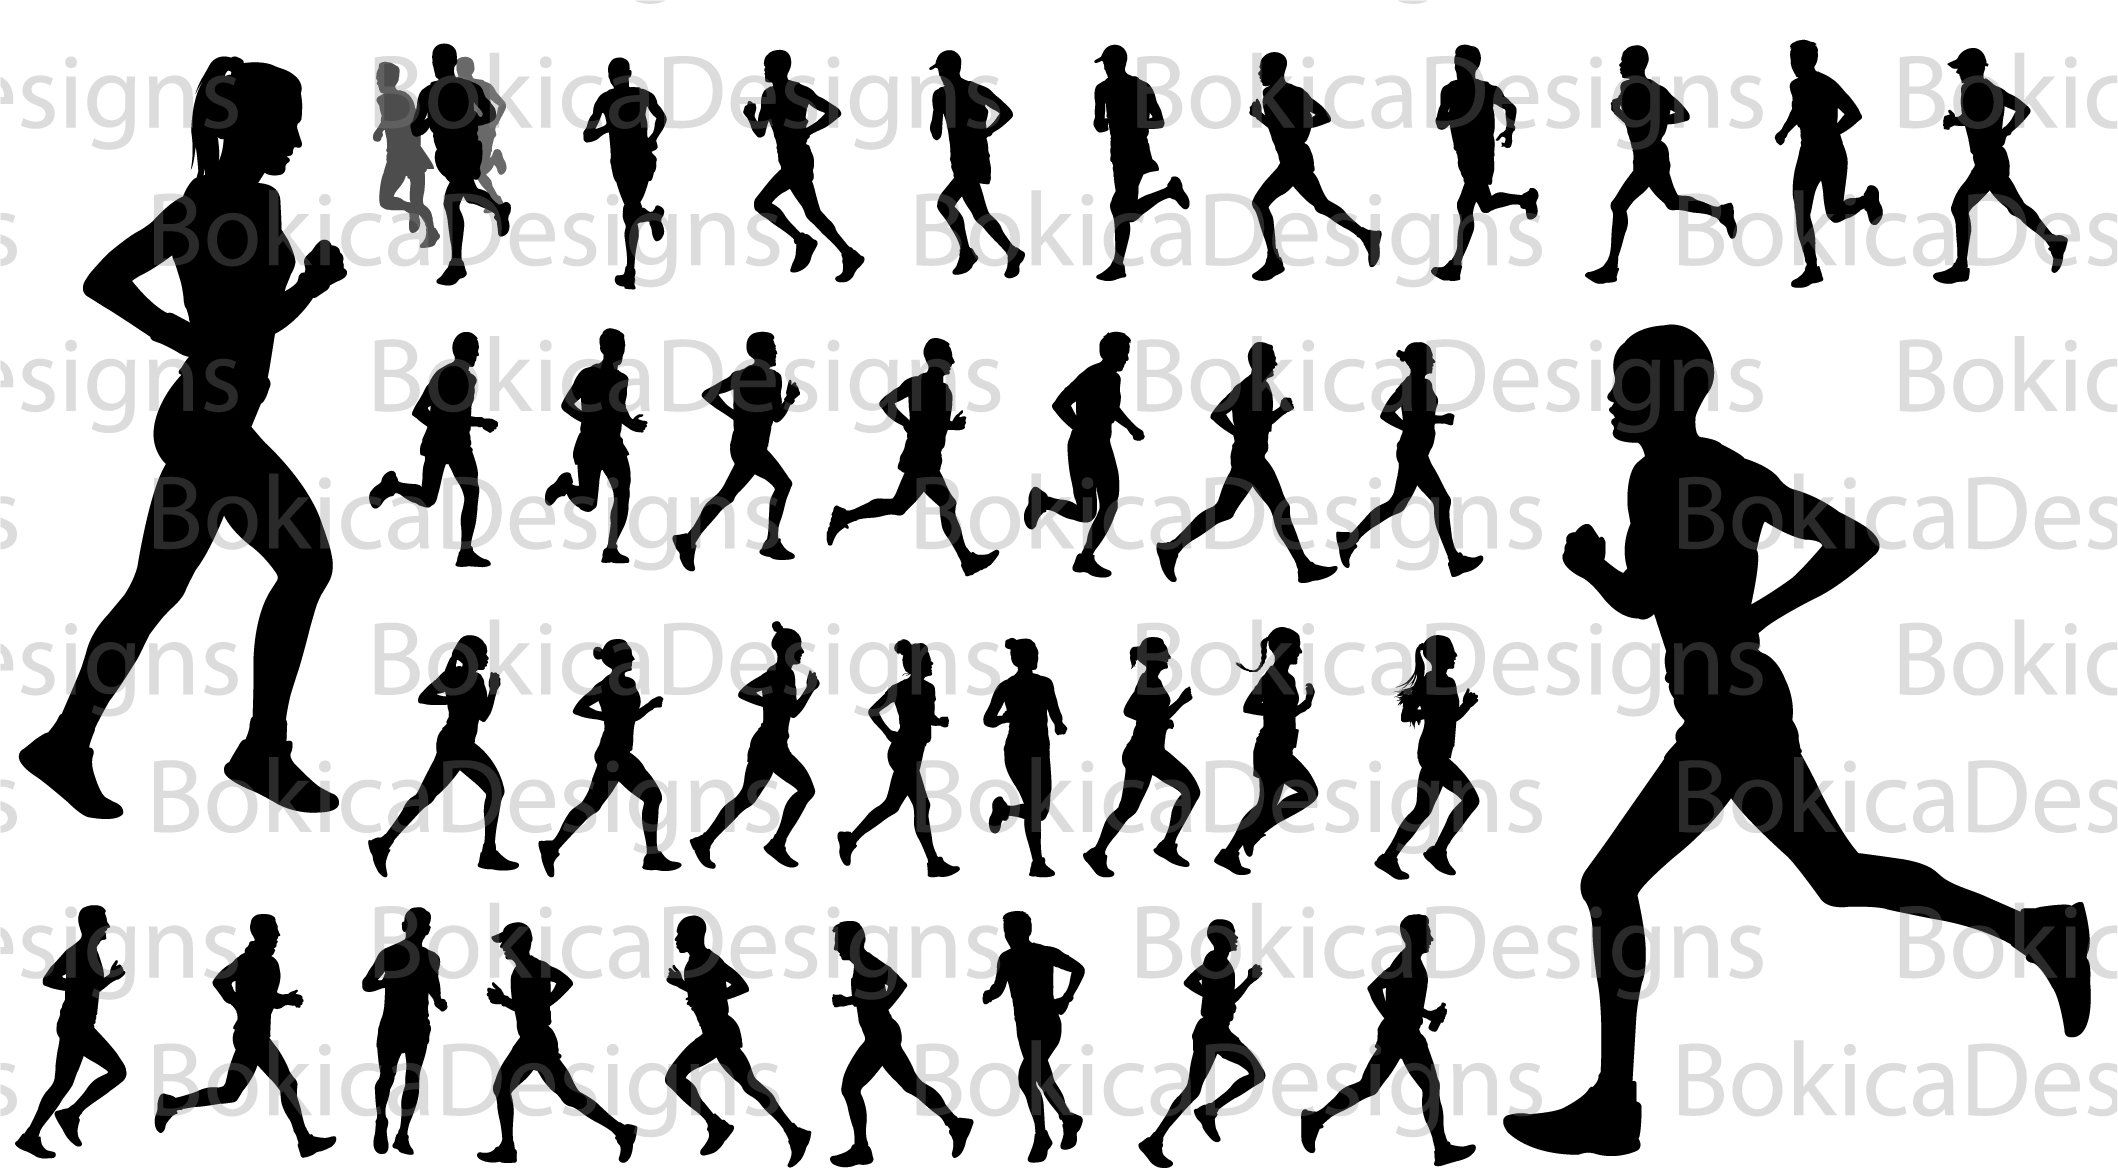 Runners Silhouette Runners Clipart Runners Svg Runners Png Etsy Silhouette Vector Vector Artwork Silhouette